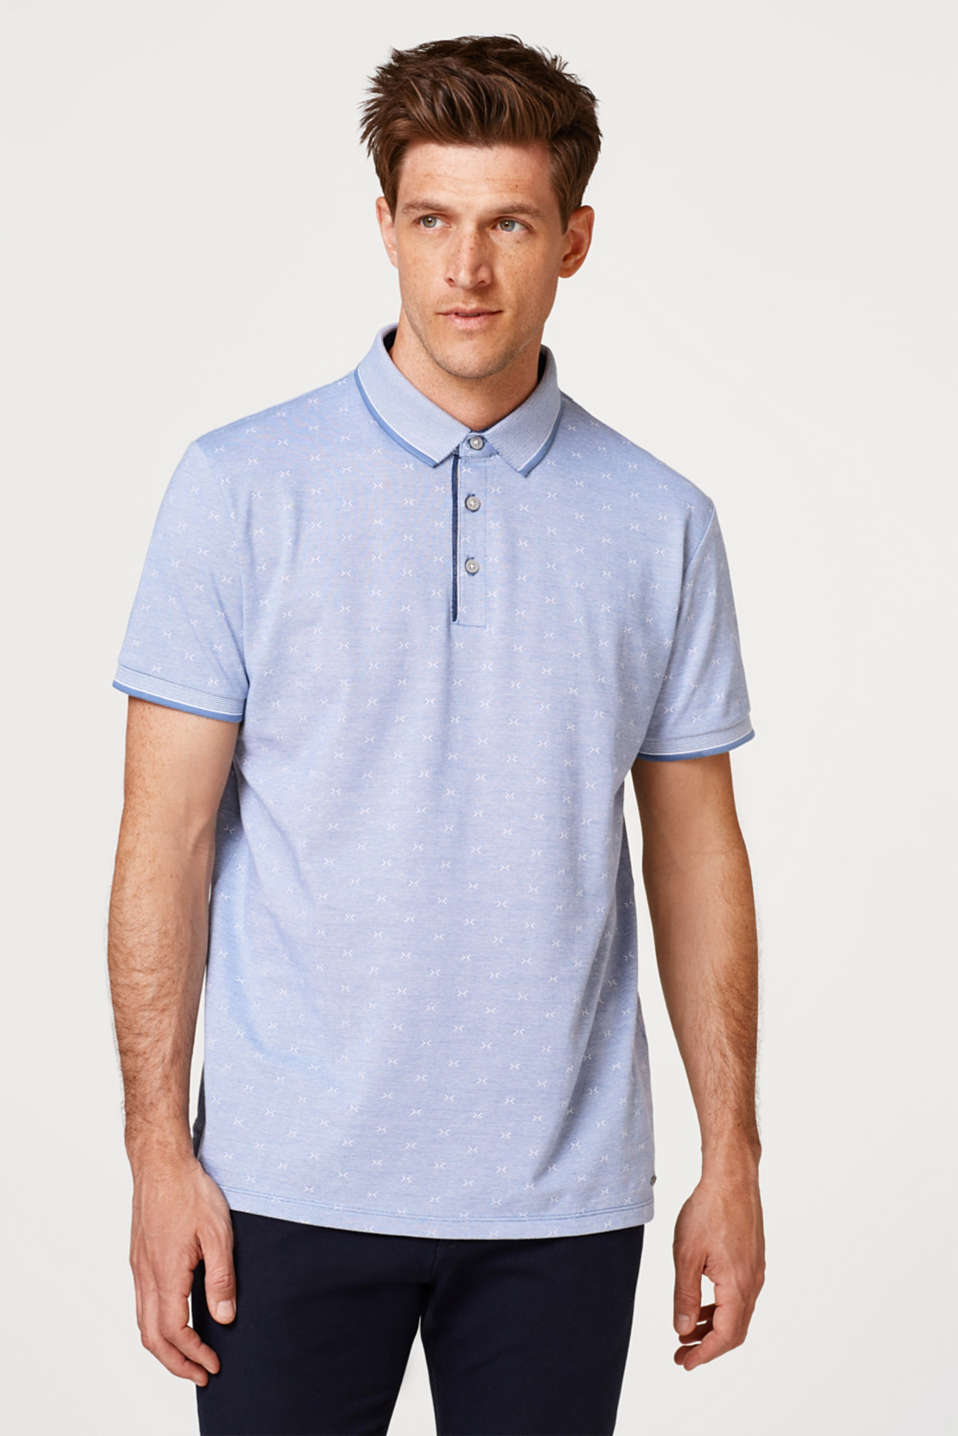 Esprit - Piqué polo shirt with a pattern, 100% cotton